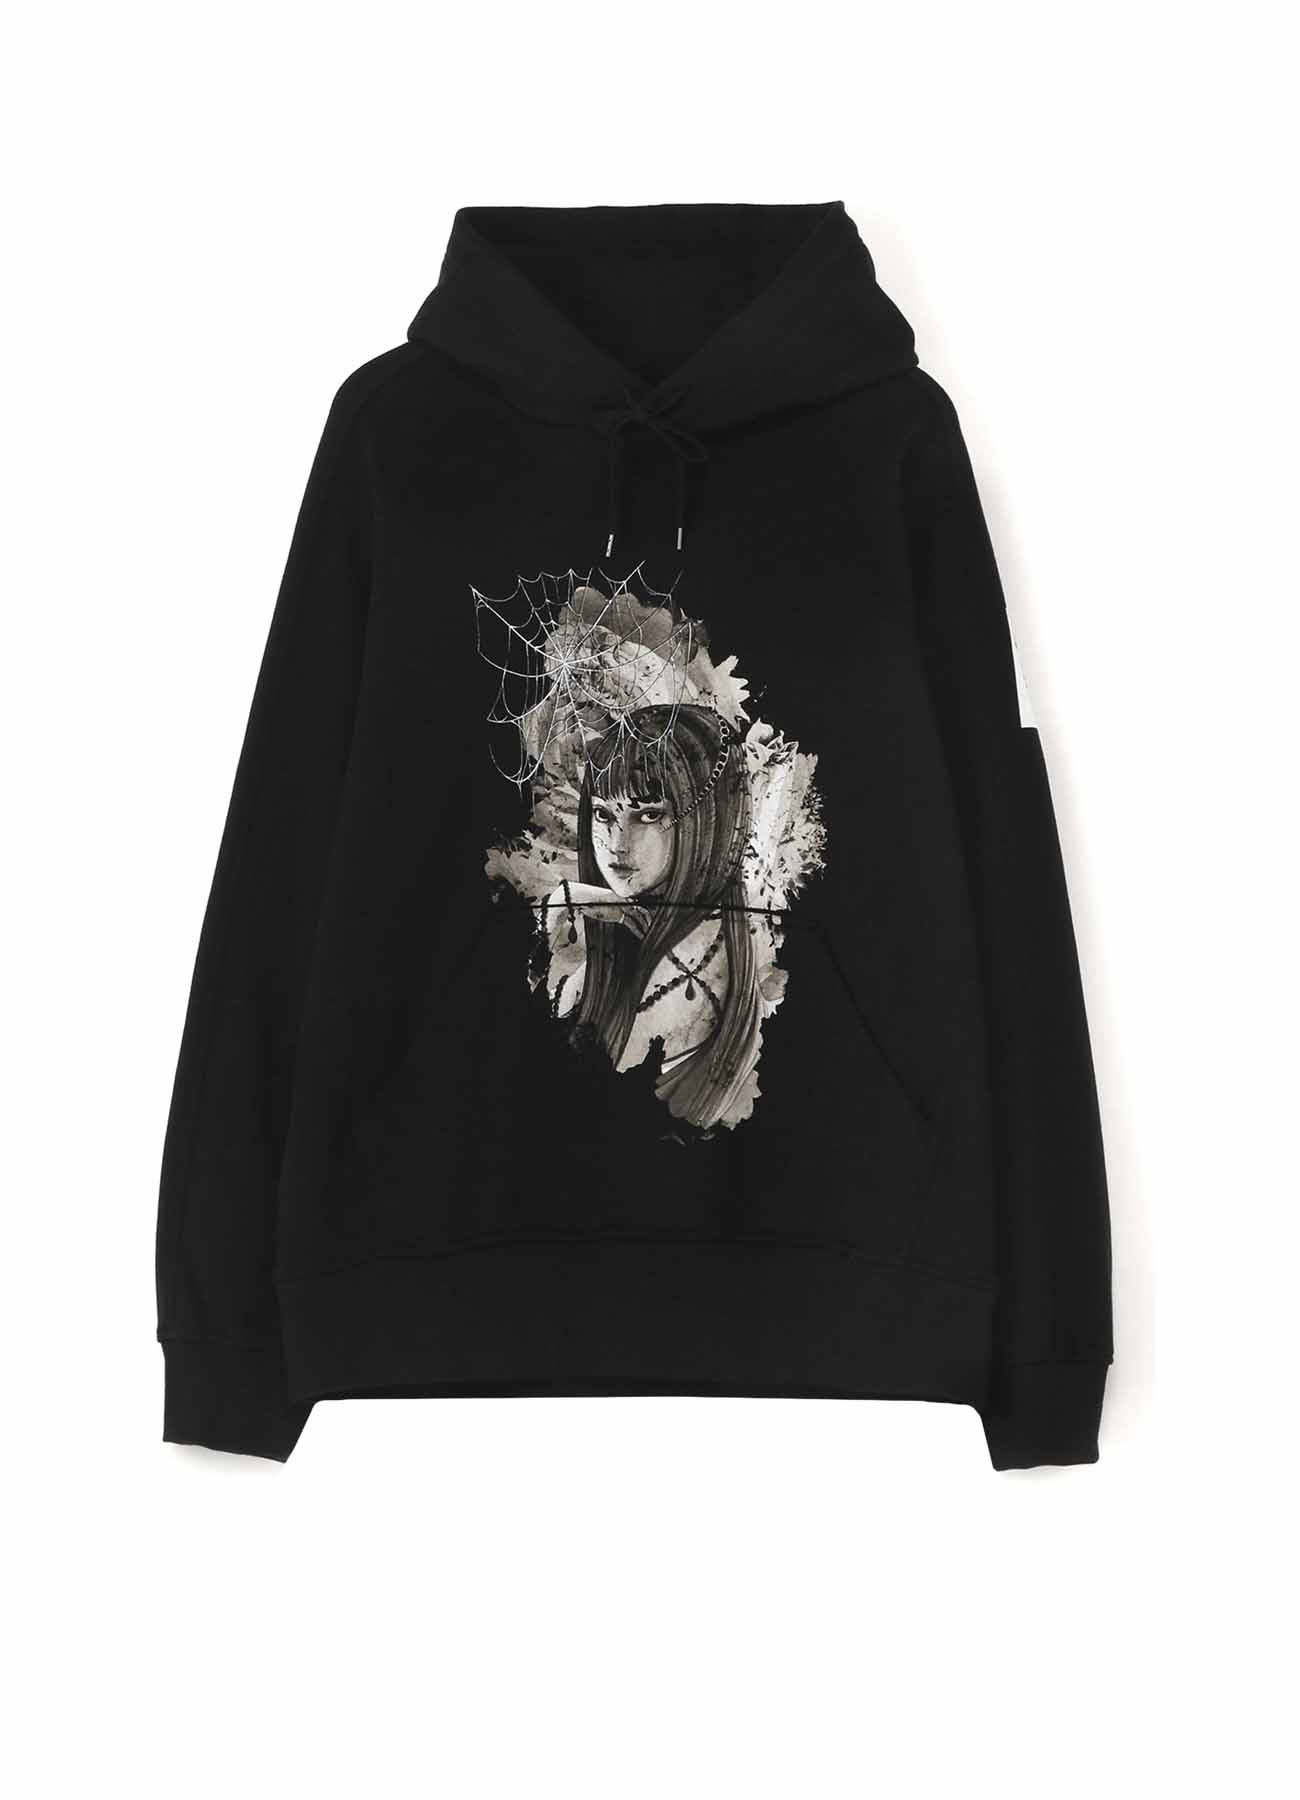 French Terry Stitch Work 「Tomie」 Flowers and Spider Web Hoodie